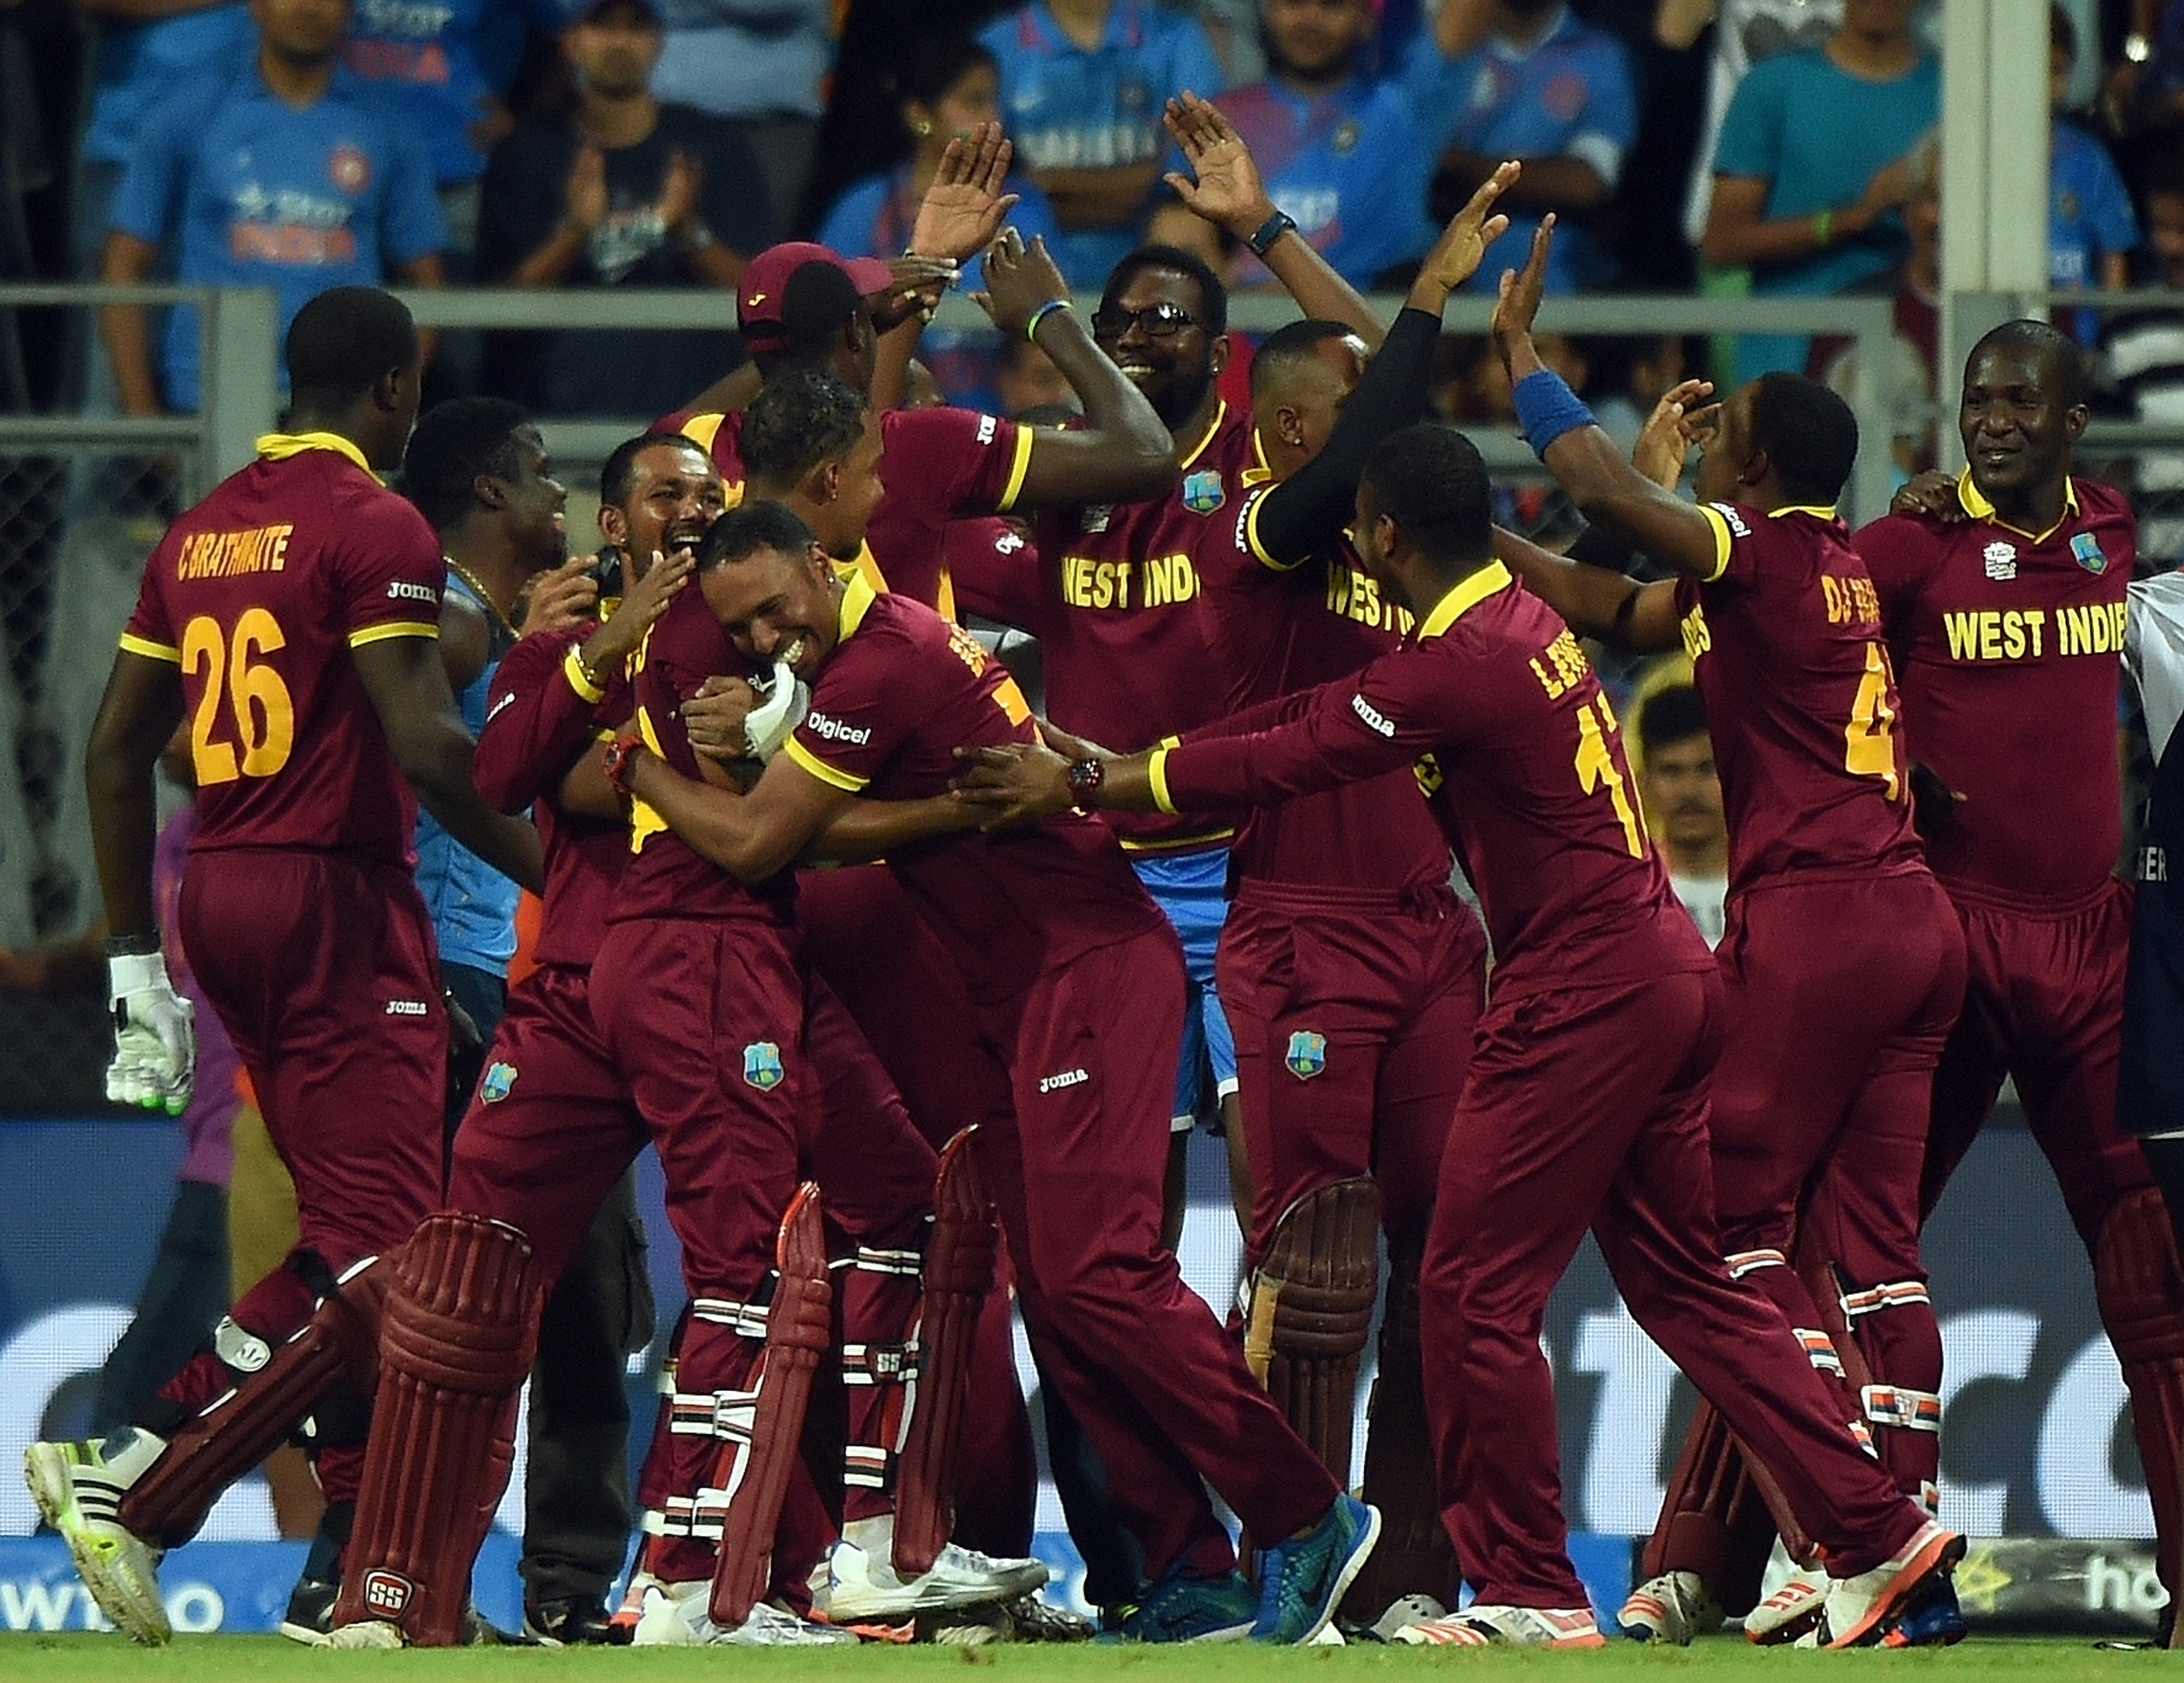 West Indies players celebrate after winning the World T20 cricket tournament semi-final match against India at The Wankhede Cricket Stadium in Mumbai on March 31, 2016. / AFP / PUNIT PARANJPE